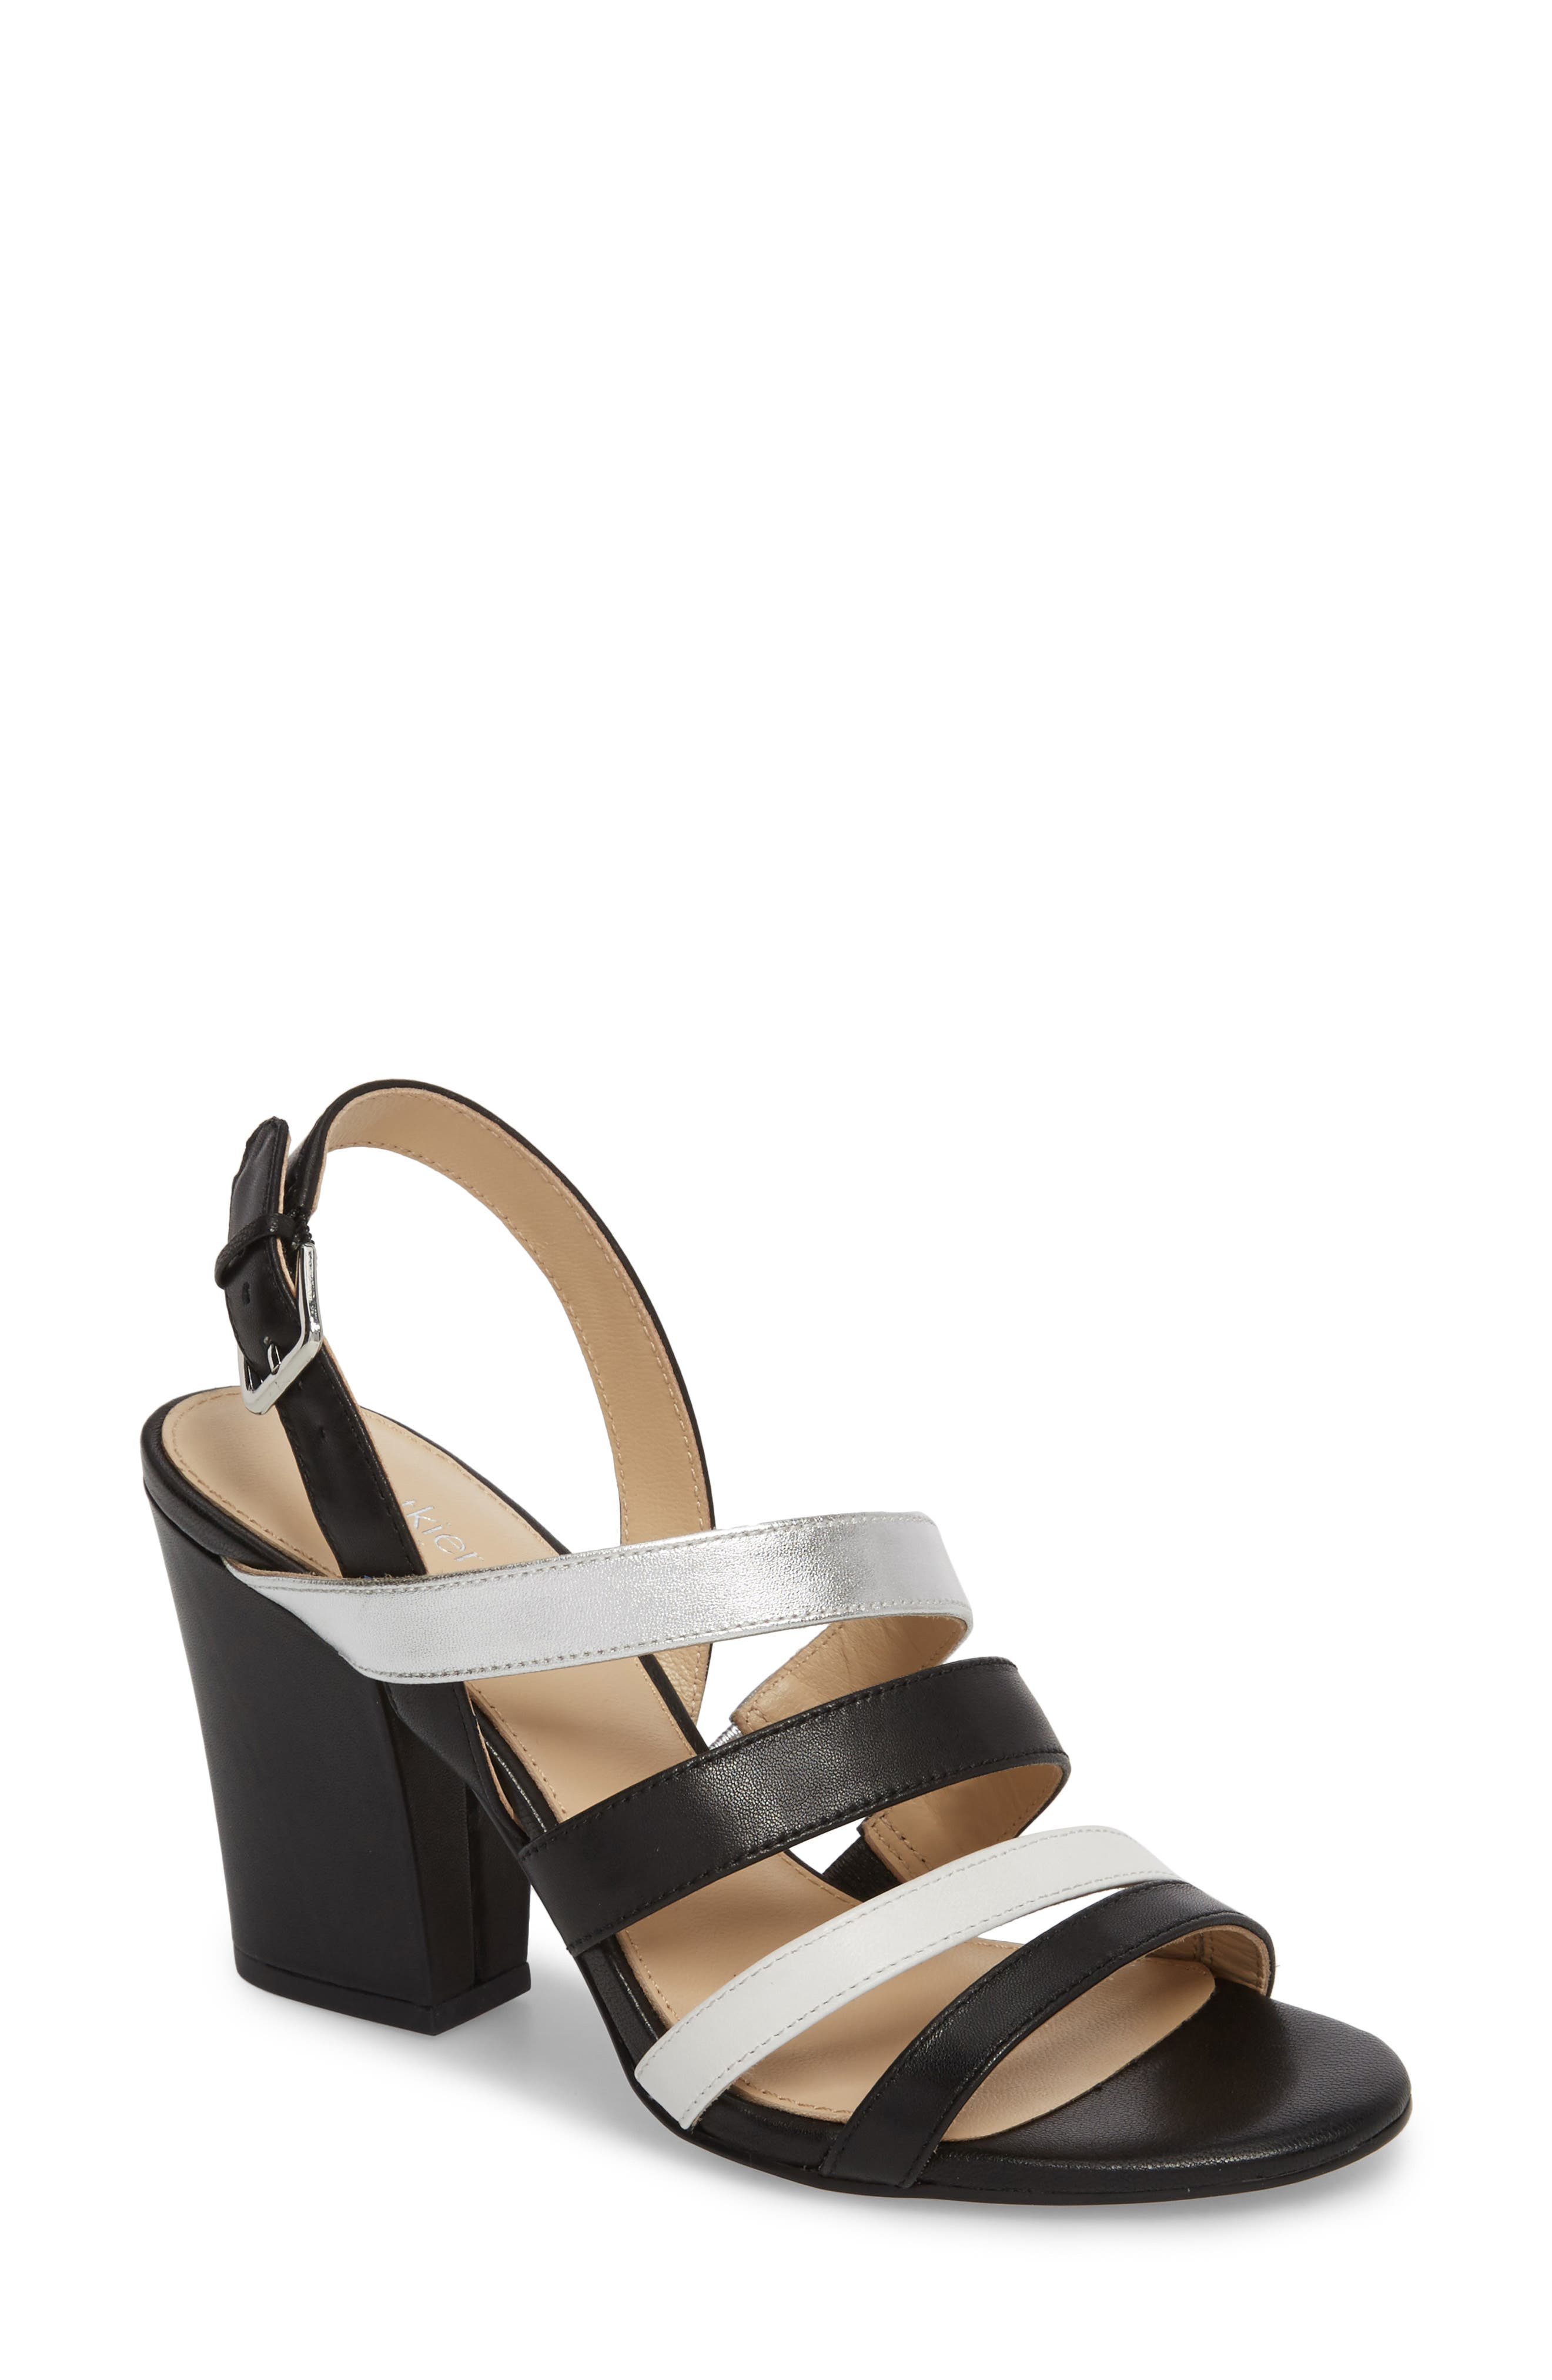 Sera Sandal,                             Main thumbnail 1, color,                             Black Multi Leather